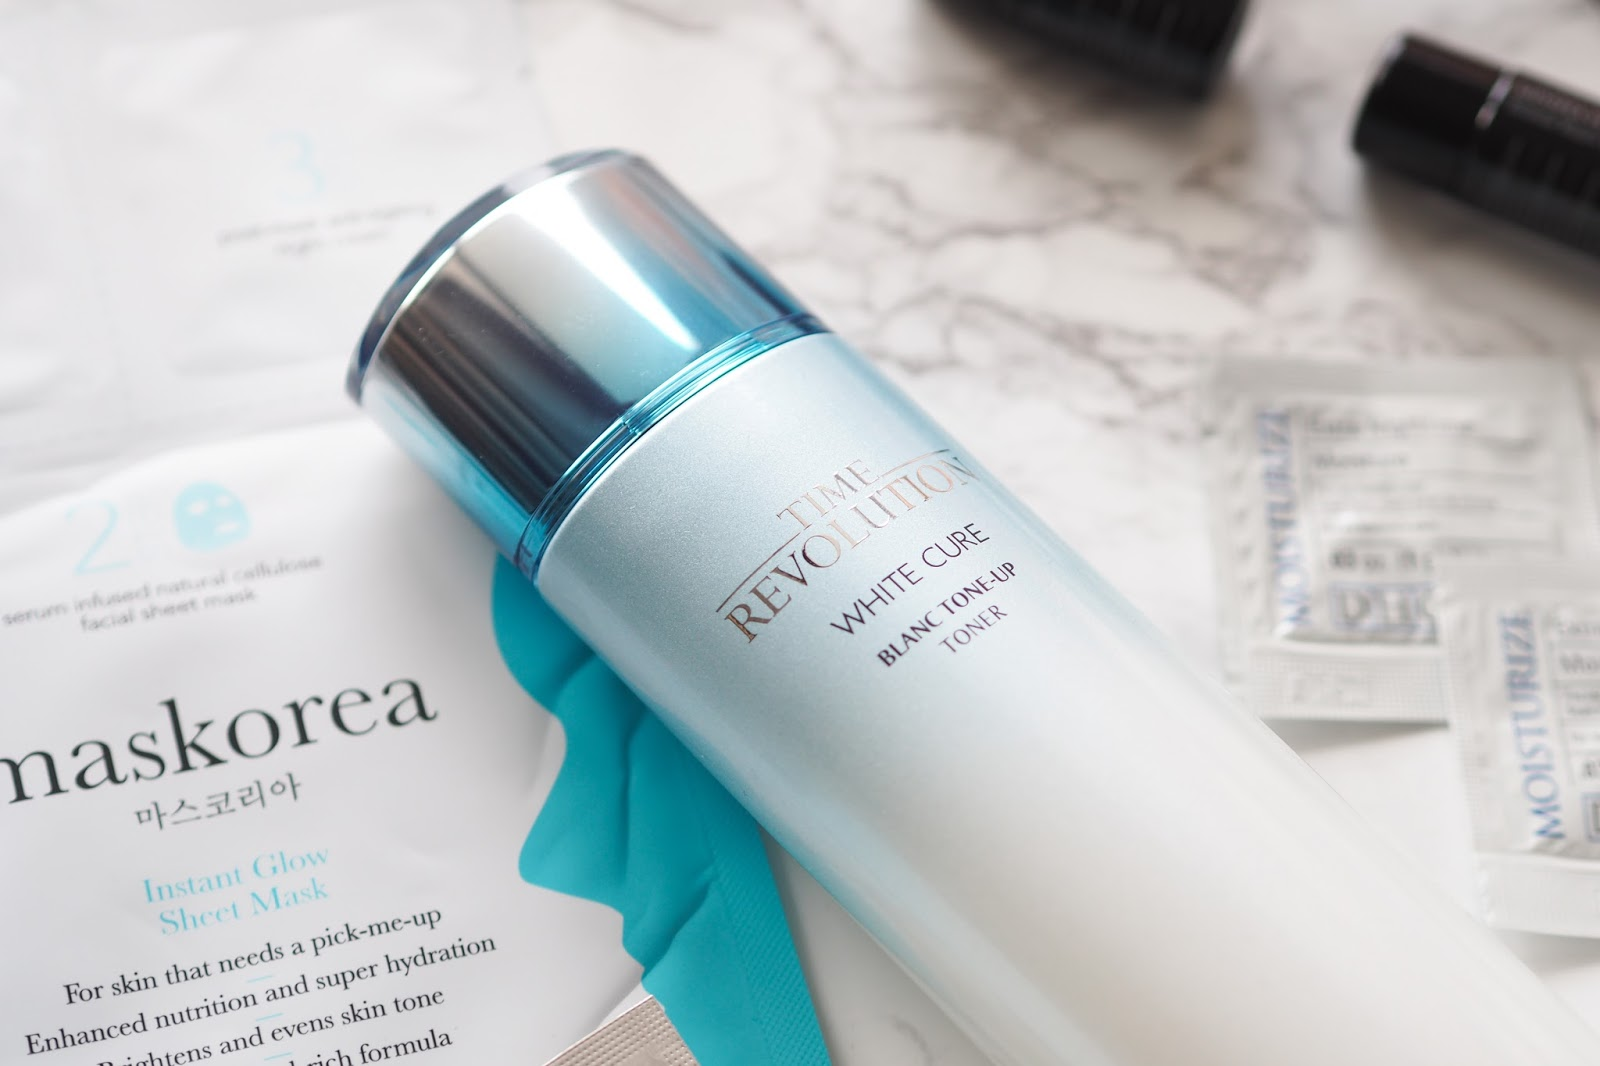 Time Revolution White Cure Blanc Tone-Up Toner - Missha Review